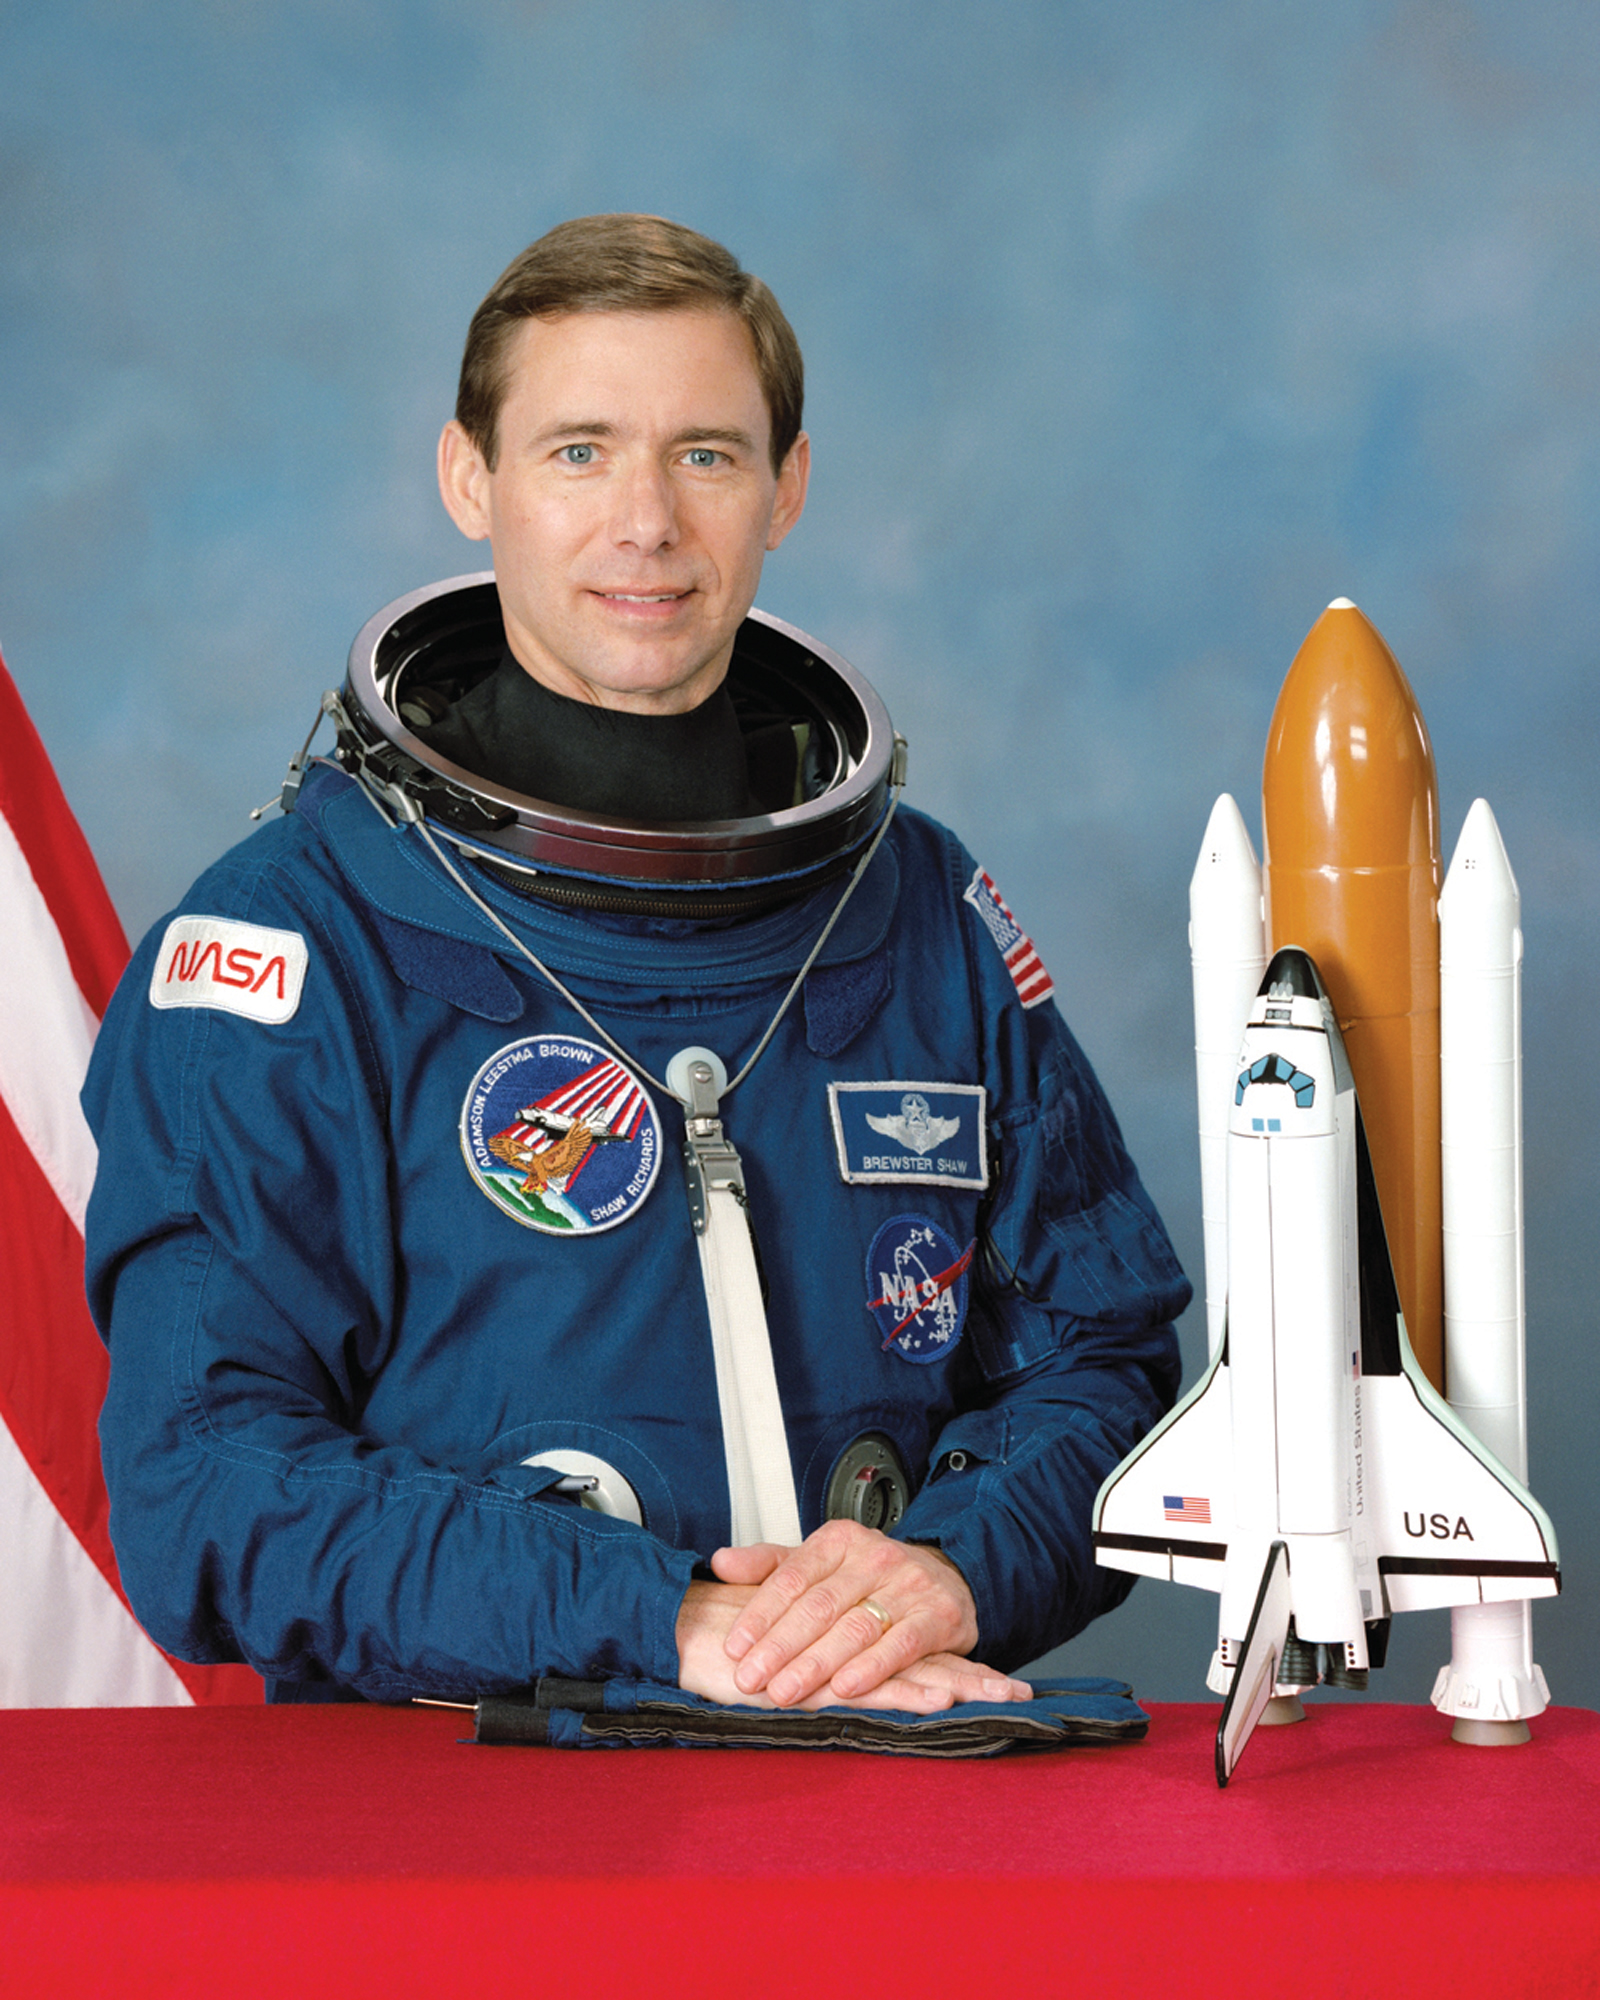 united states astronaut first - photo #23